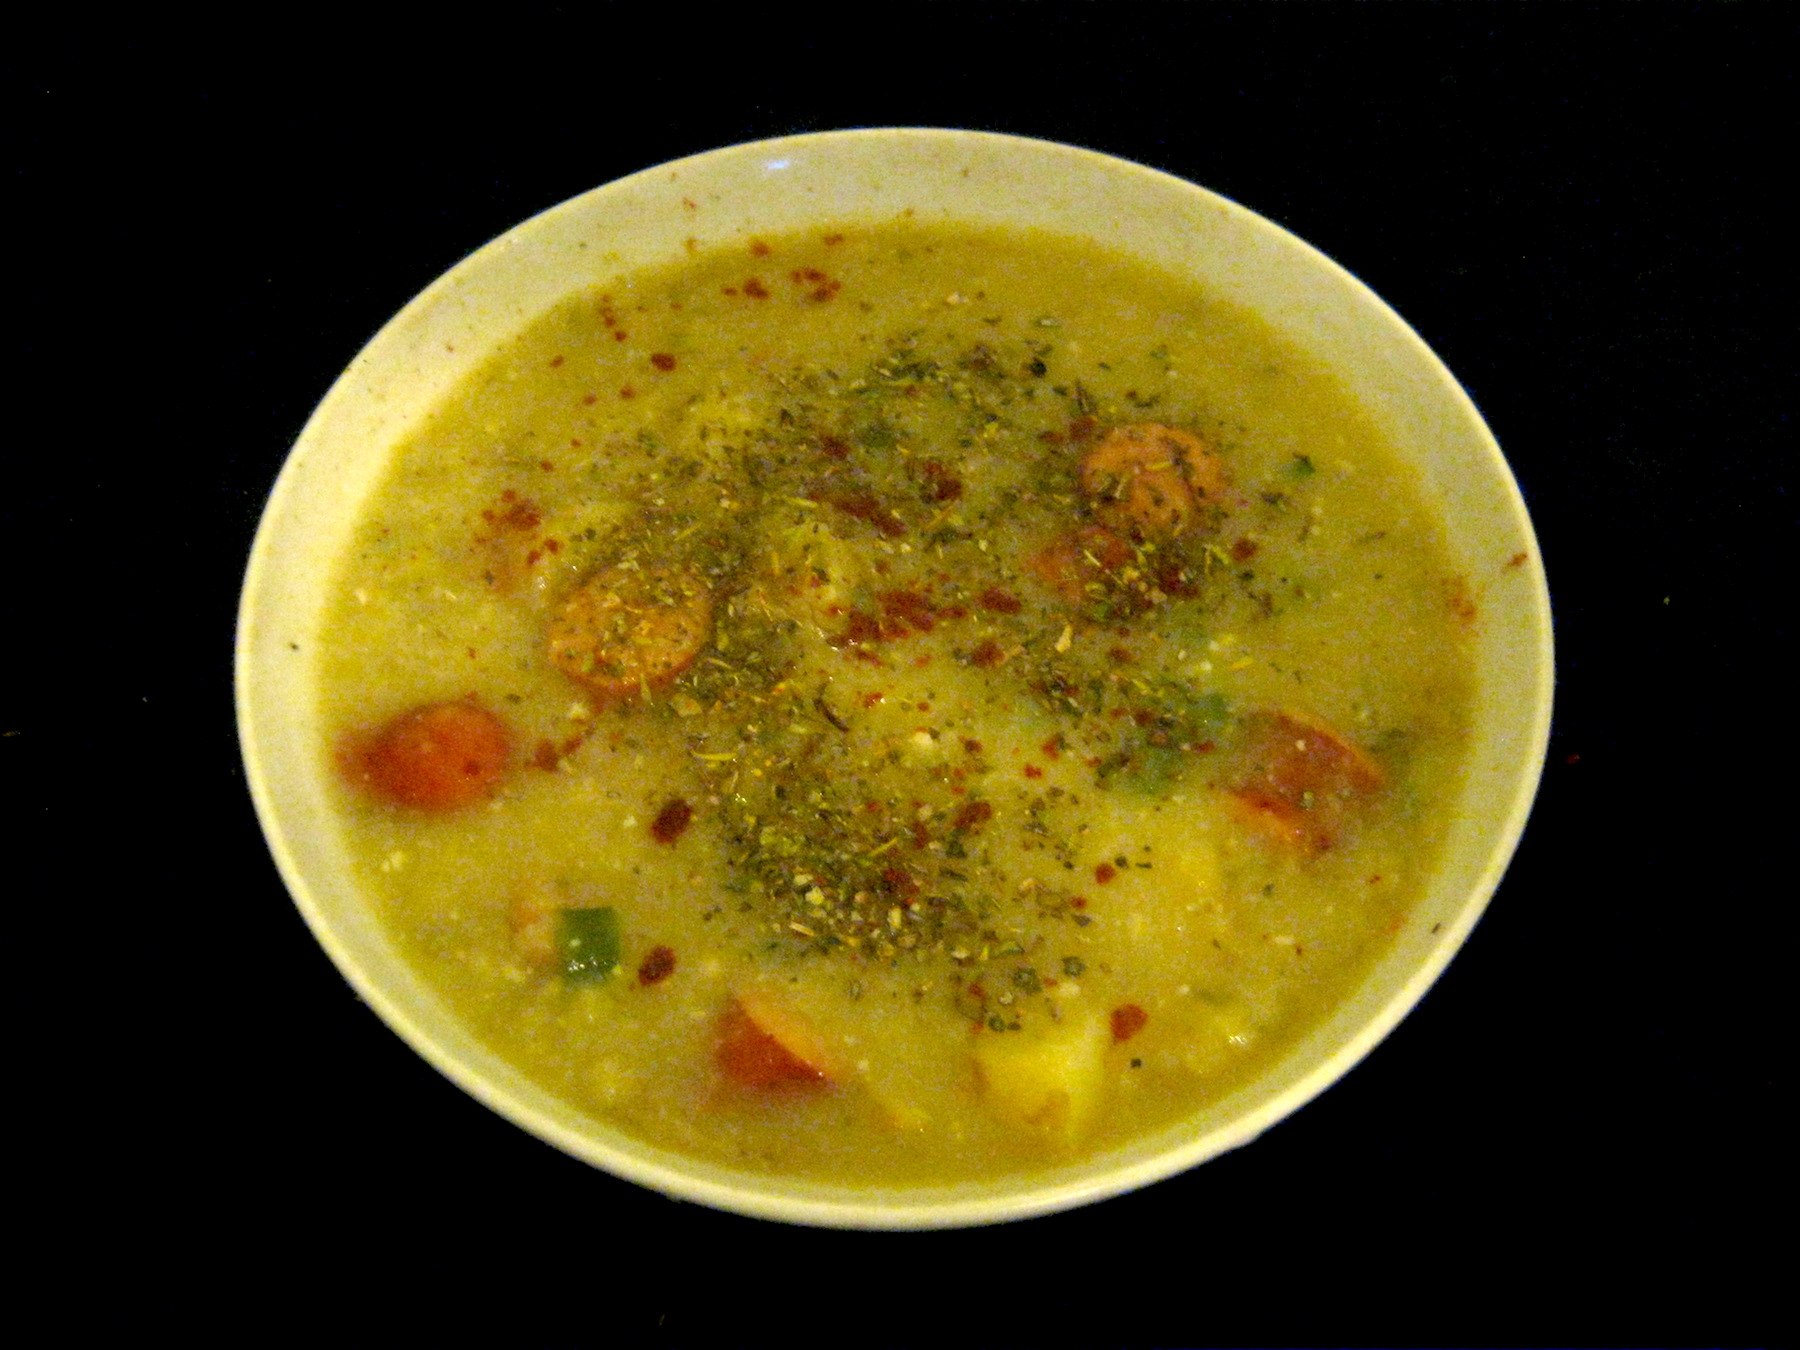 Potato leek soup with Debrecziner in a white bowl